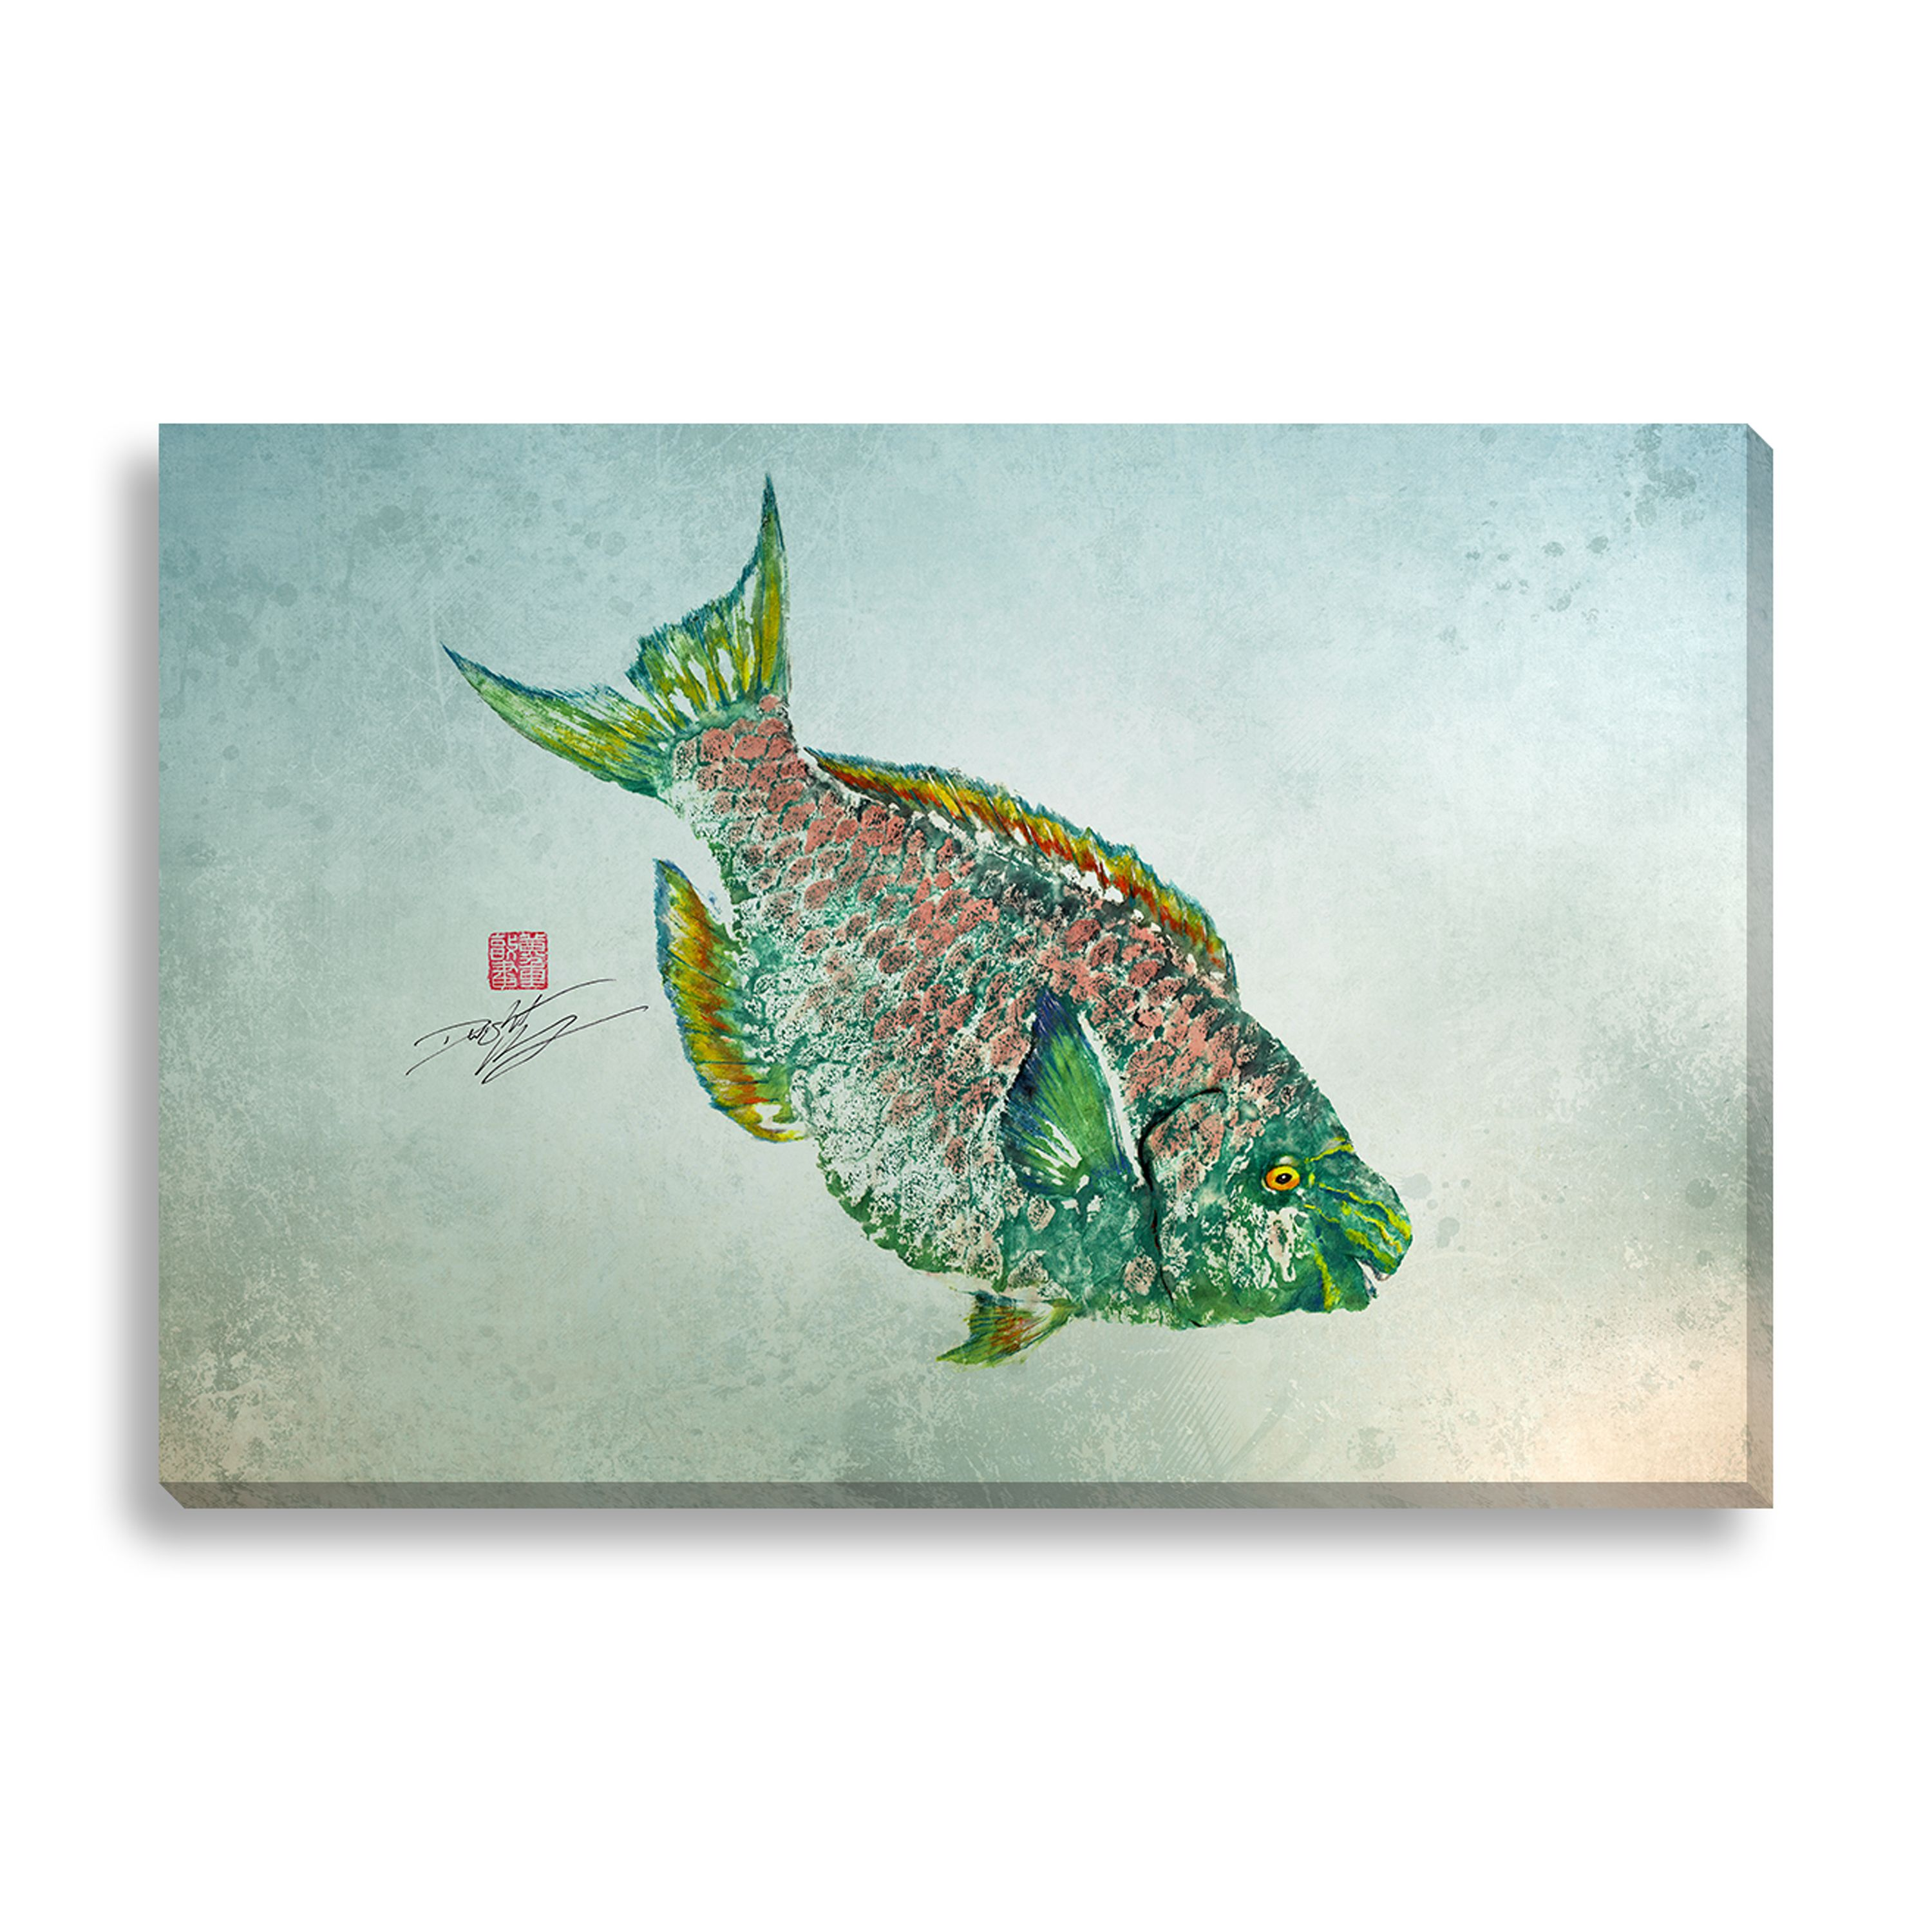 Gallery Direct Dwight Hwang \'Parrot Fish\' Canvas Art | Products ...